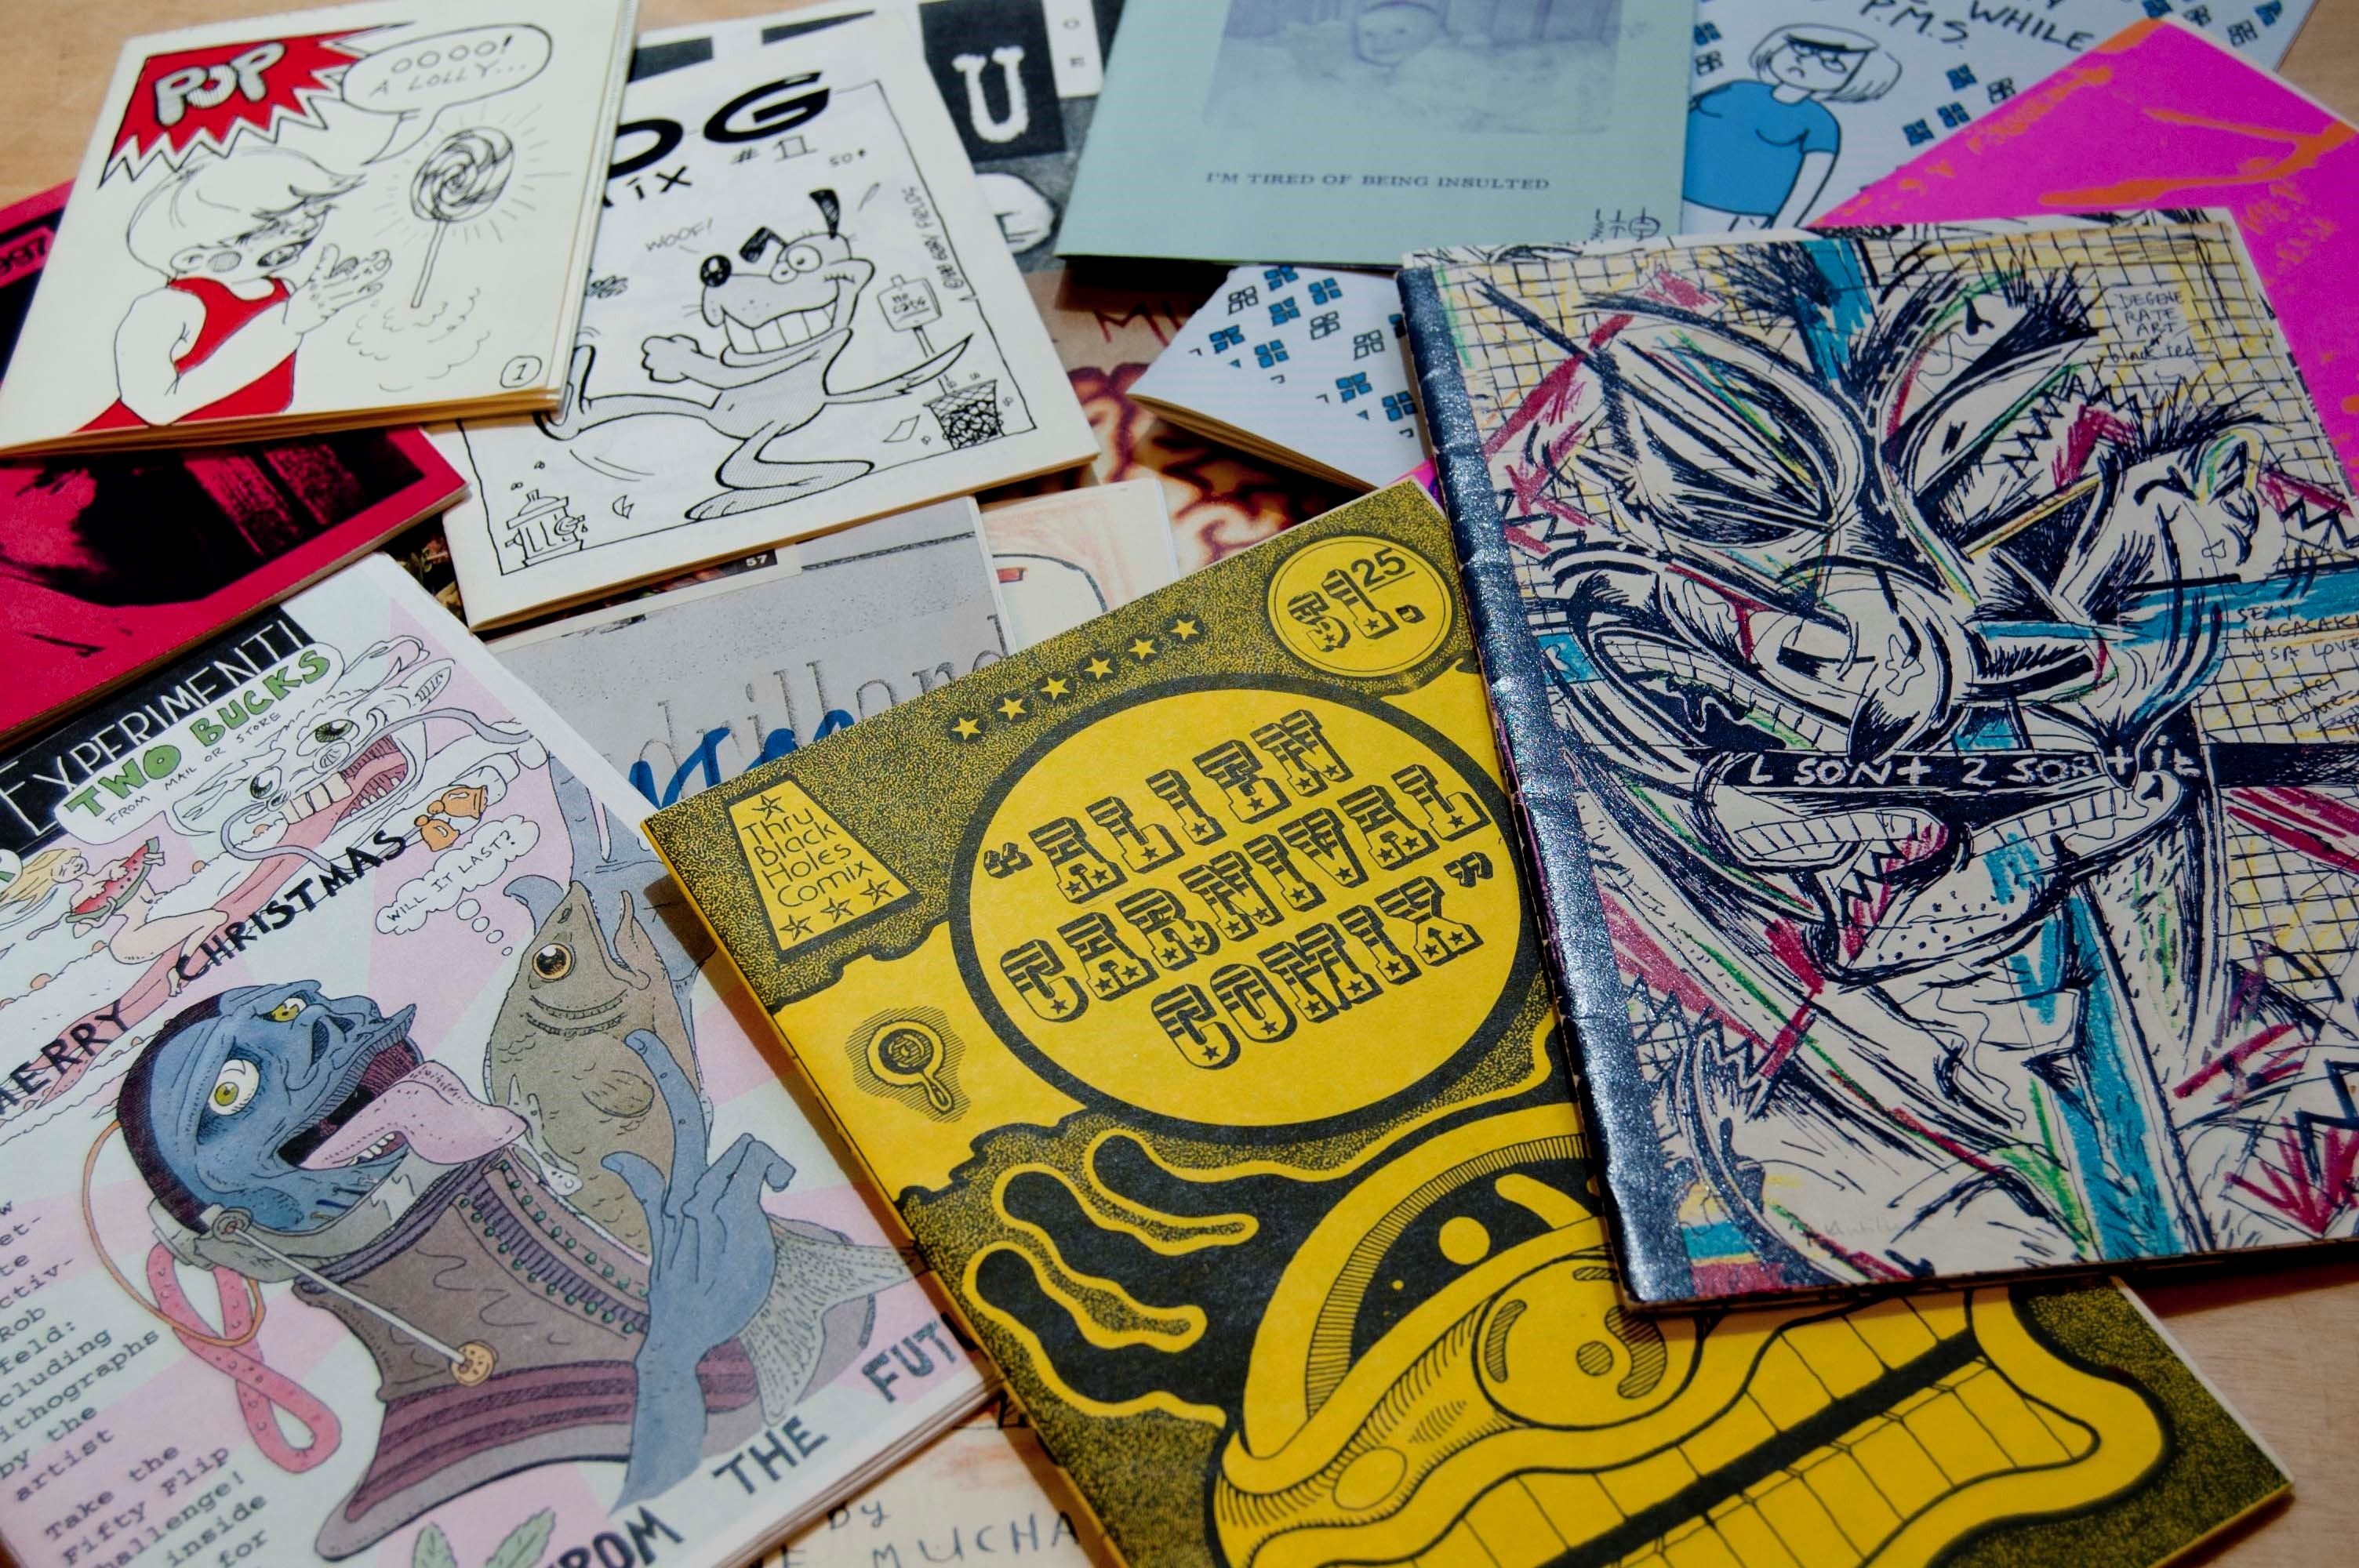 Zines in the Joan Flasch Artists' Book Collection. / Image by Flaxman Library on Flickr, used under CC2.0.